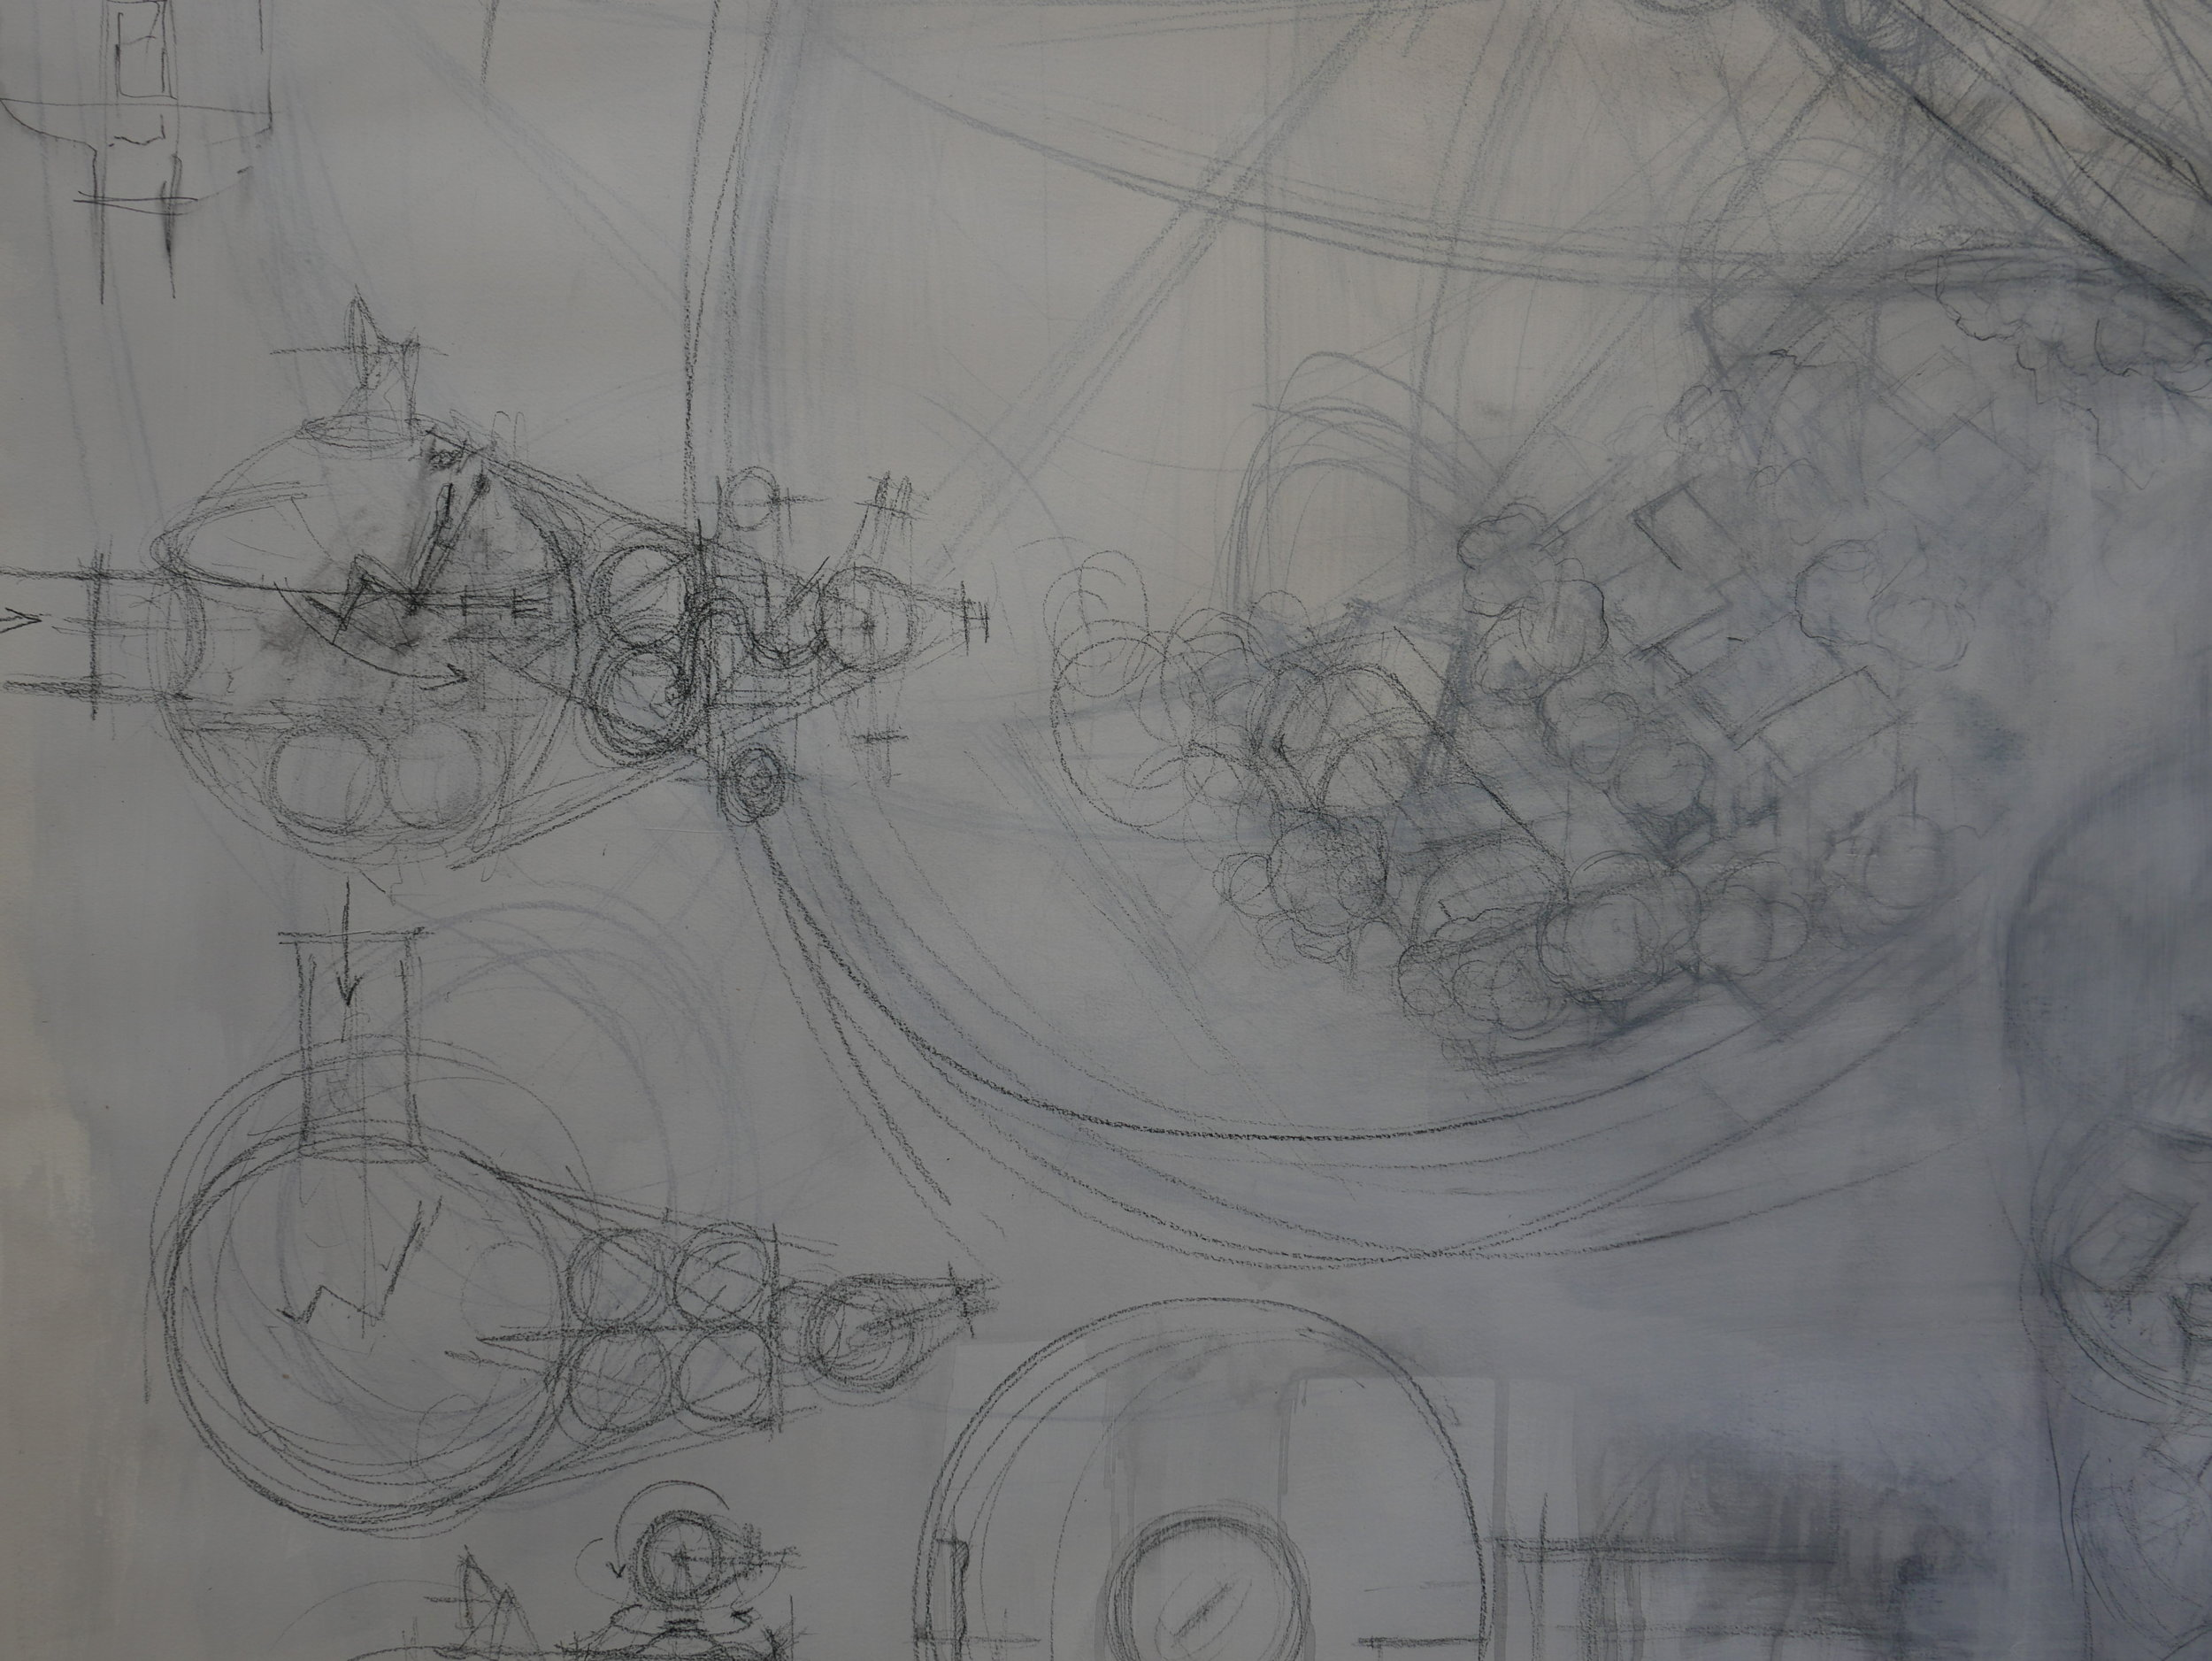 space habitat 02, studio drawing (detail), 2017  pencil, paper 150 x 180cm